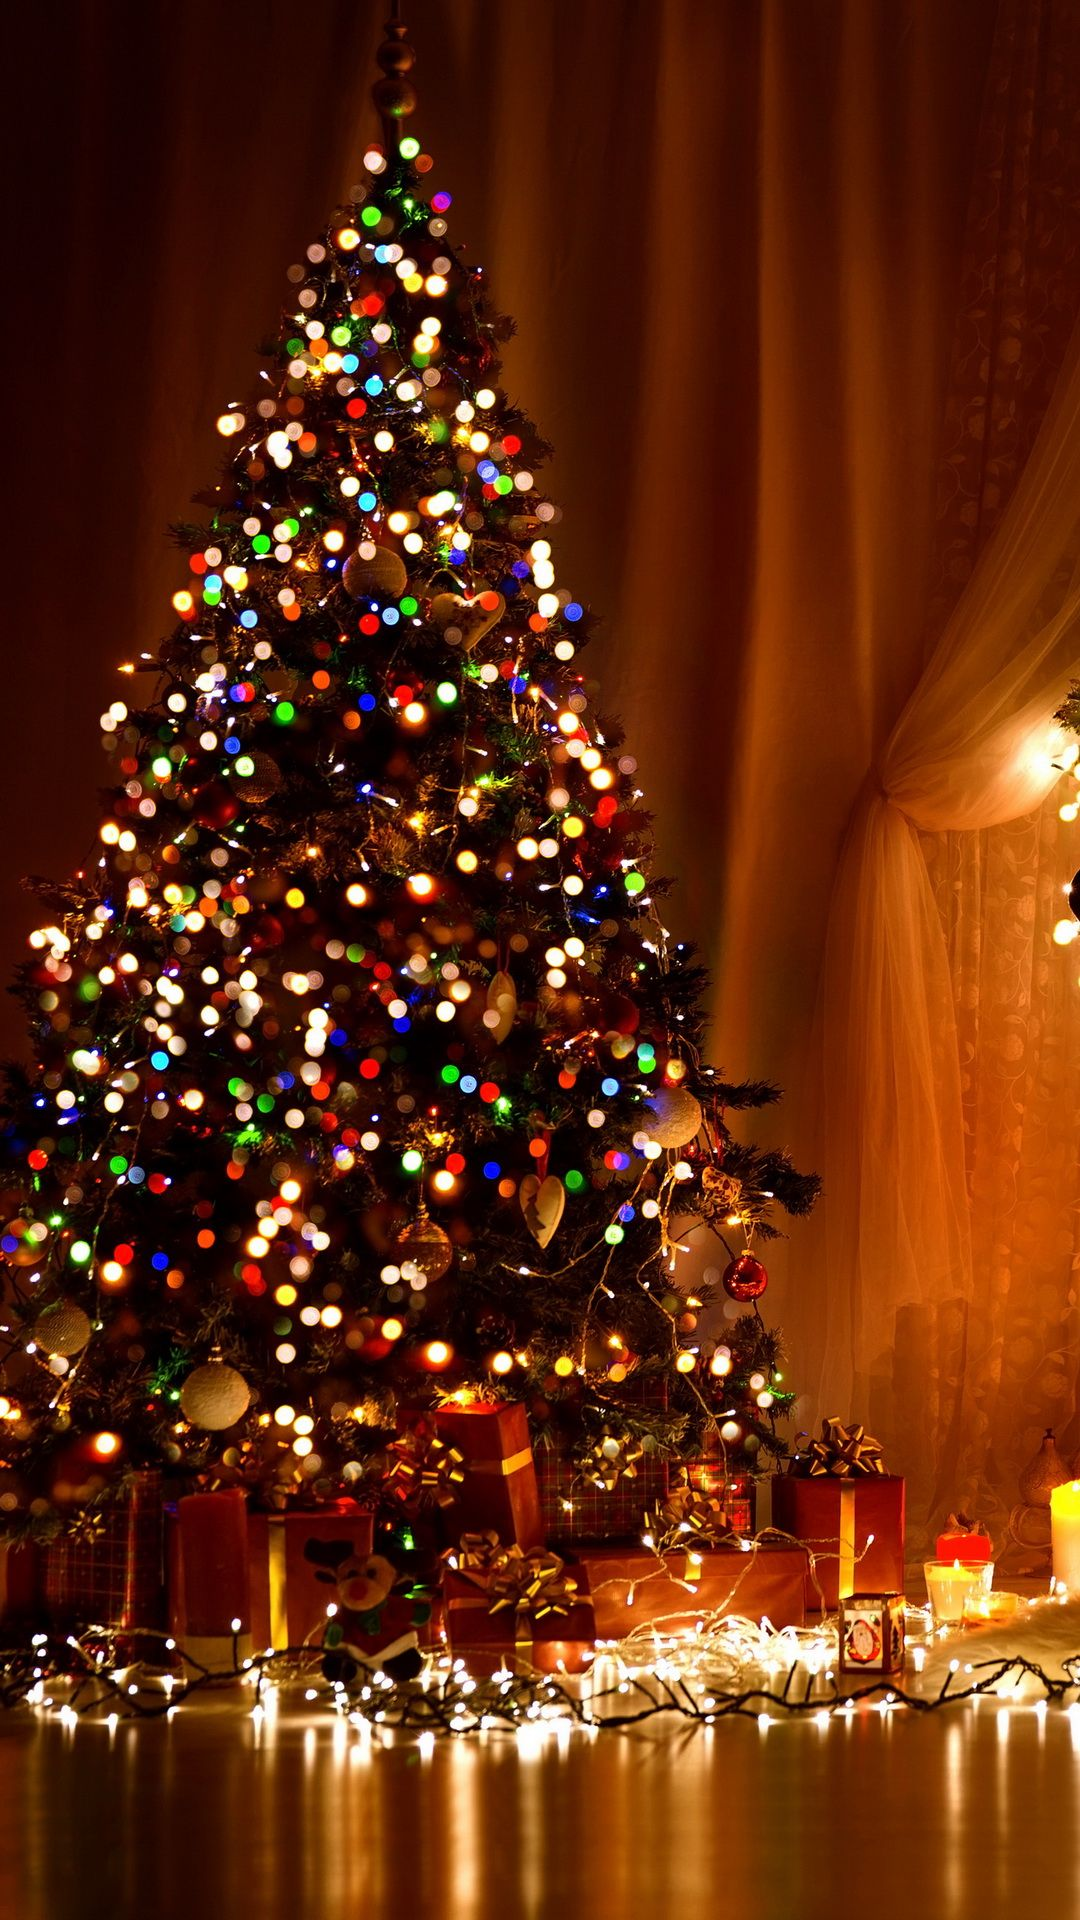 Christmas-time-Merry-Christmas-and-Happy-New-Tap-to-see-more-Joyful-Christmas-iPhone-l-wallpaper-wp3403902